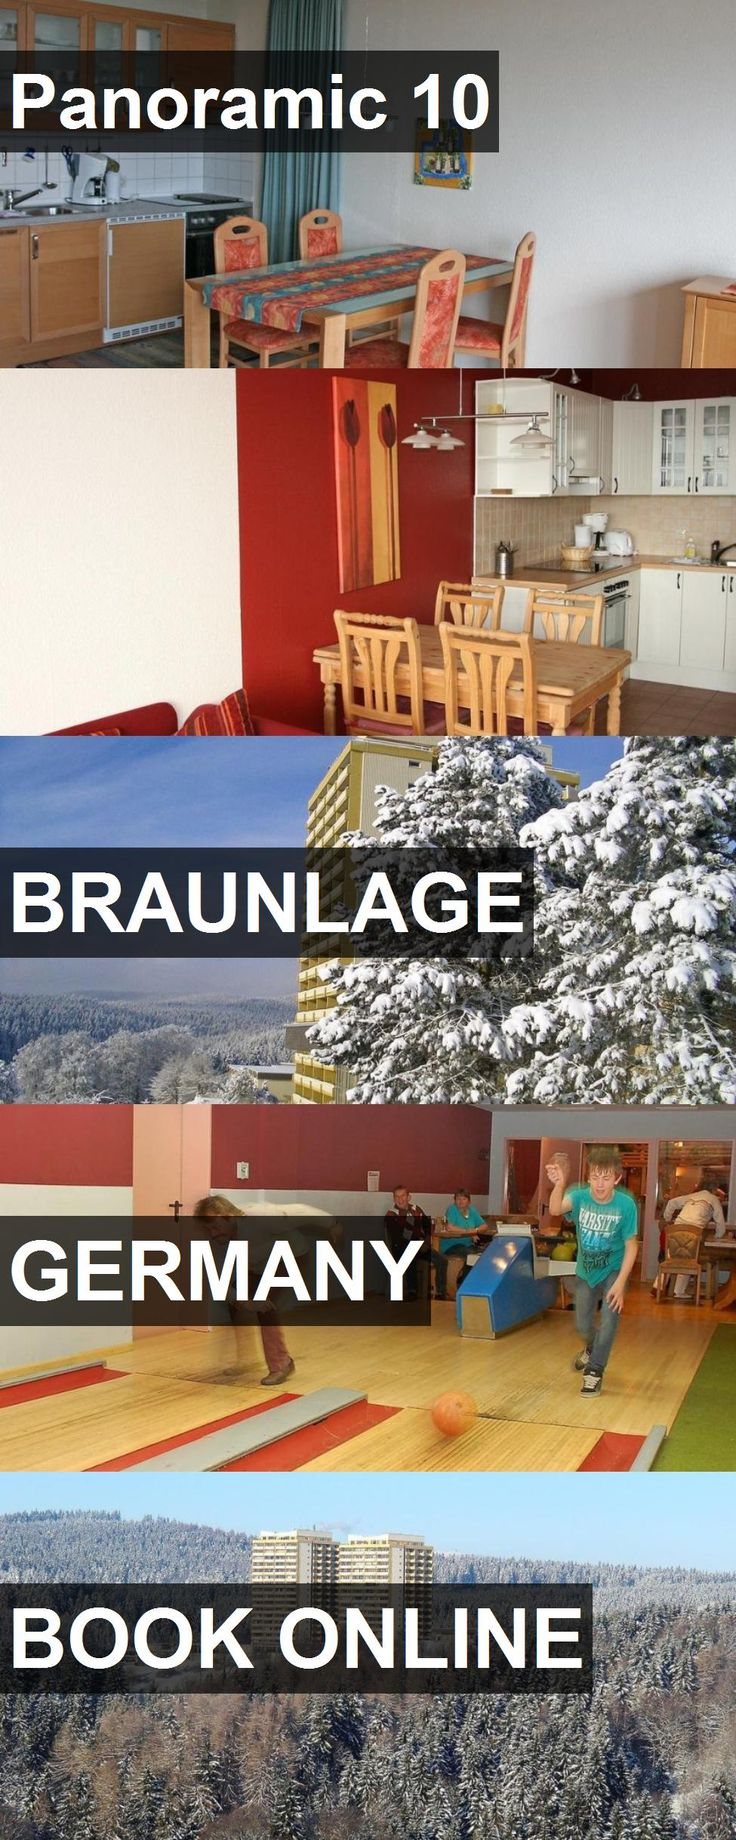 Hotel Panoramic 10 in Braunlage, Germany. For more information, photos, reviews and best prices please follow the link. #Germany #Braunlage #travel #vacation #hotel